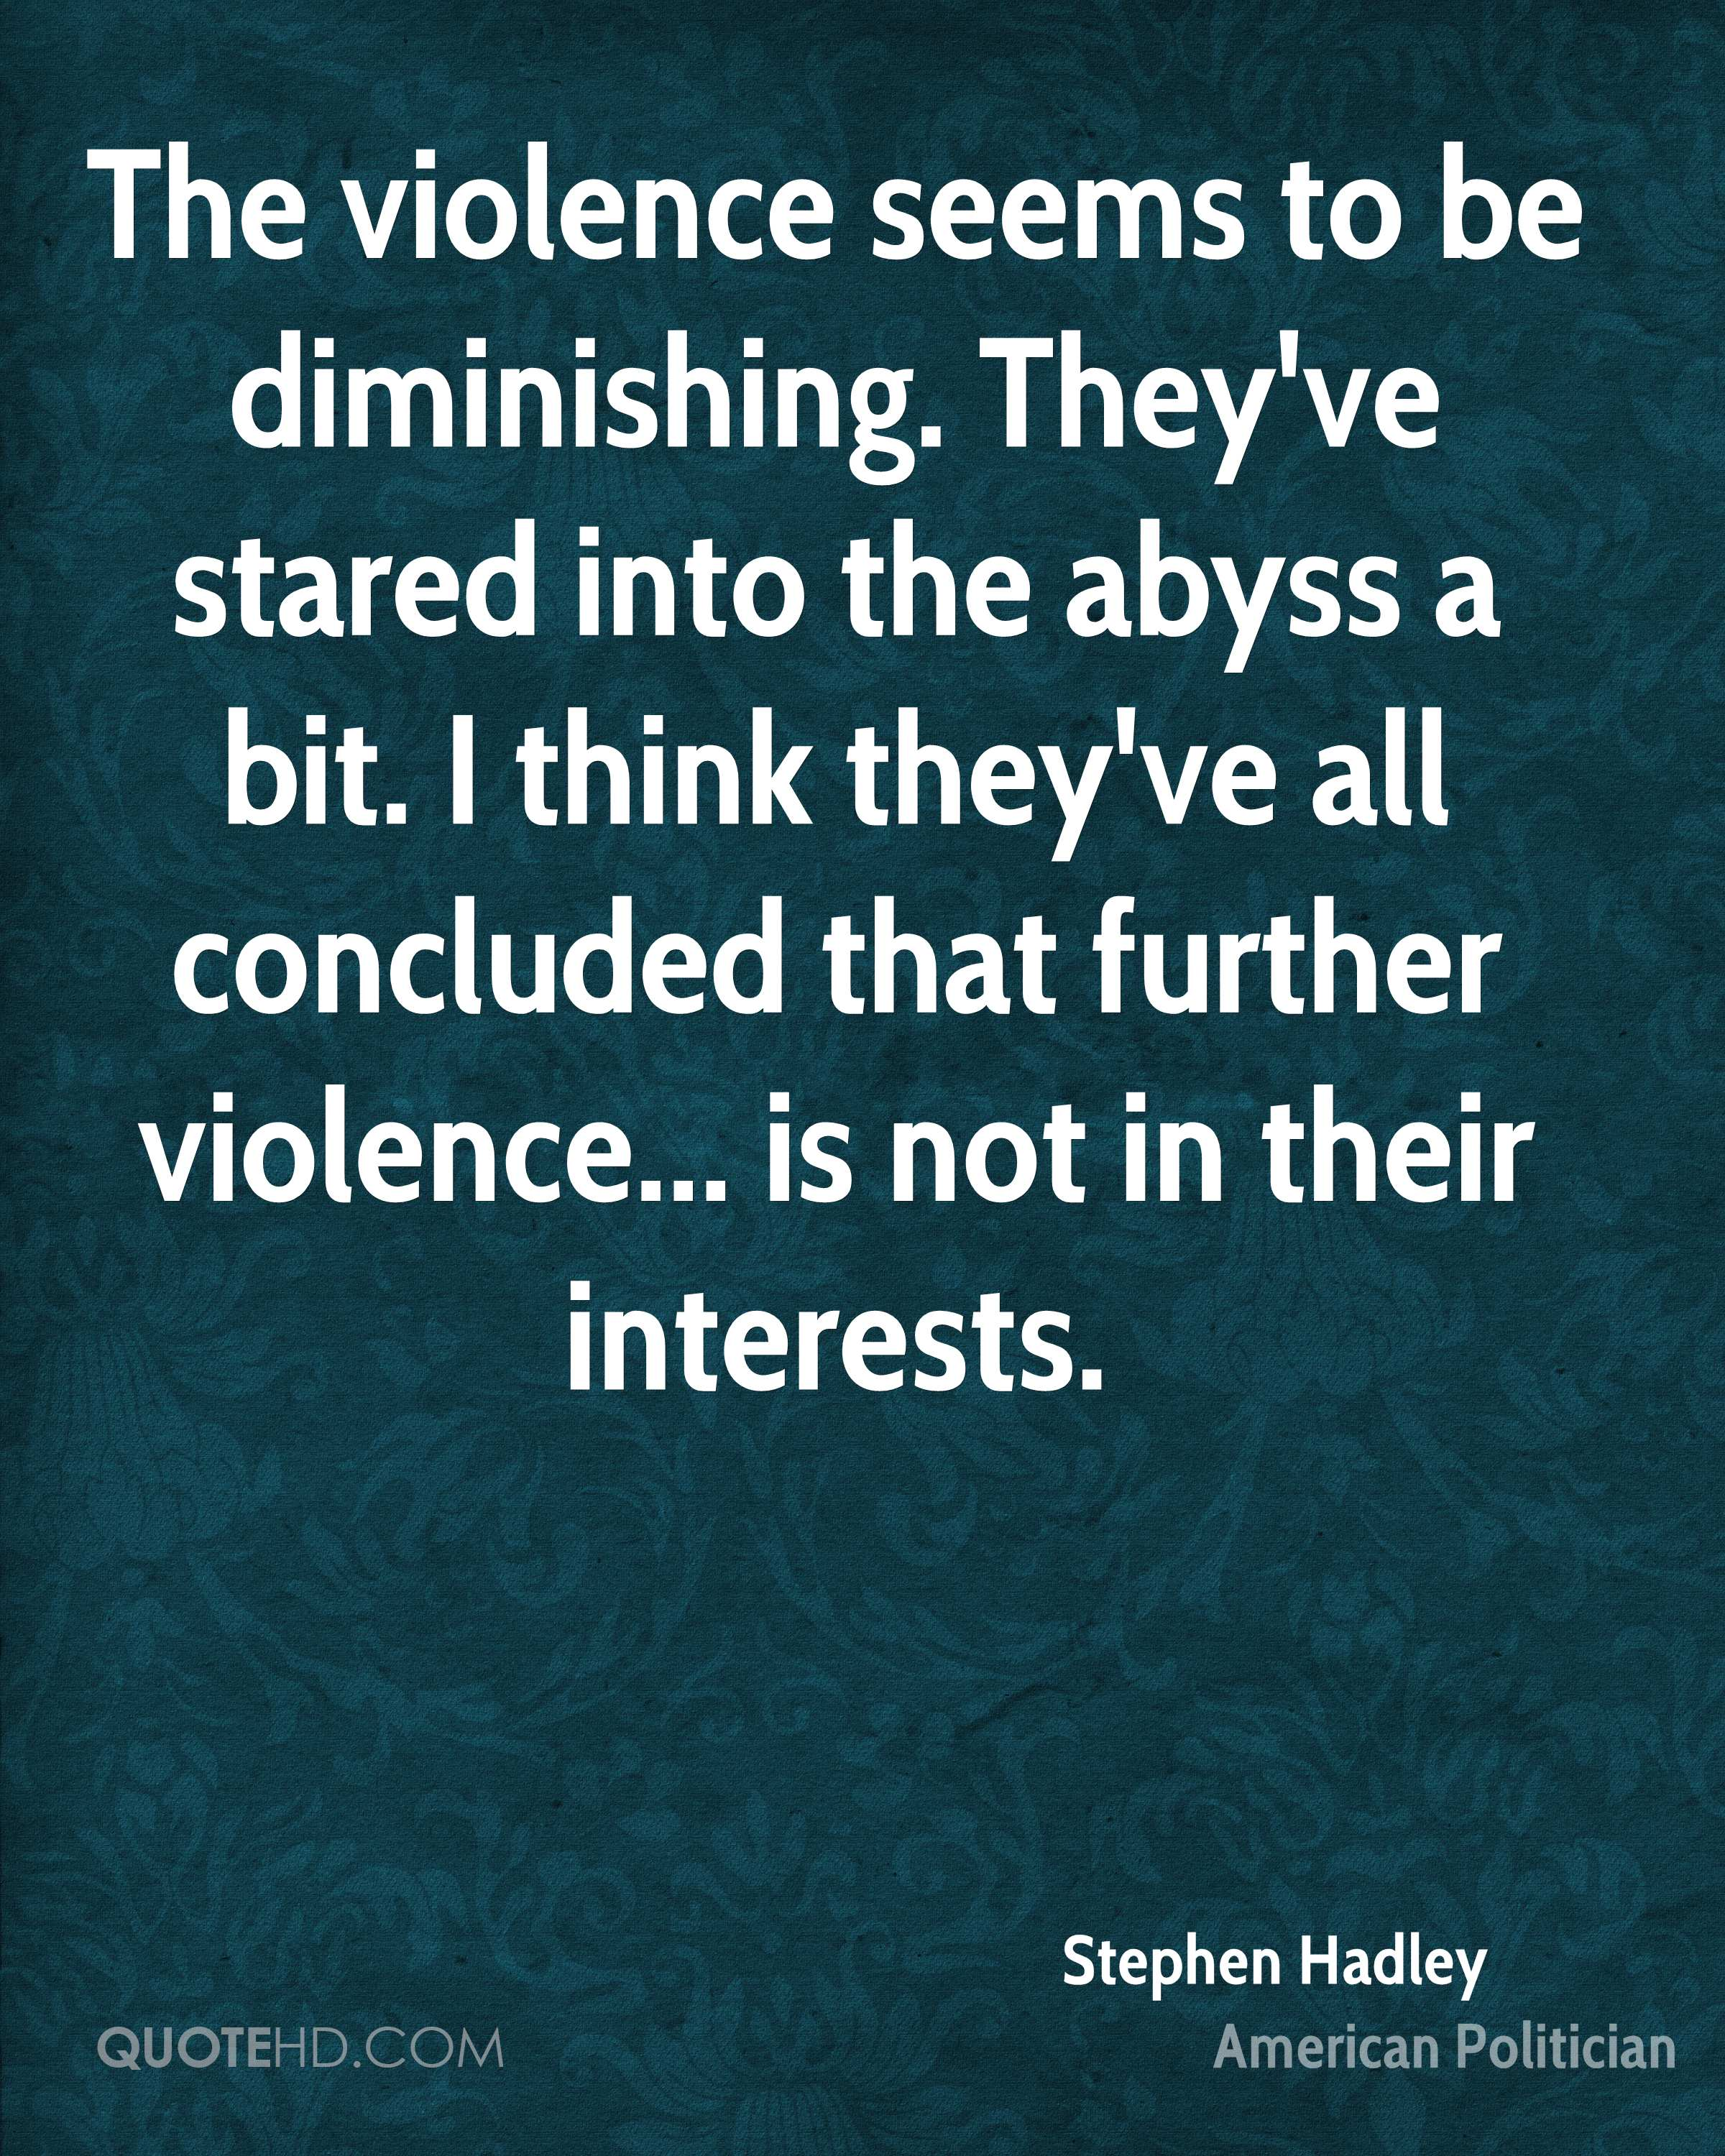 The violence seems to be diminishing. They've stared into the abyss a bit. I think they've all concluded that further violence... is not in their interests.